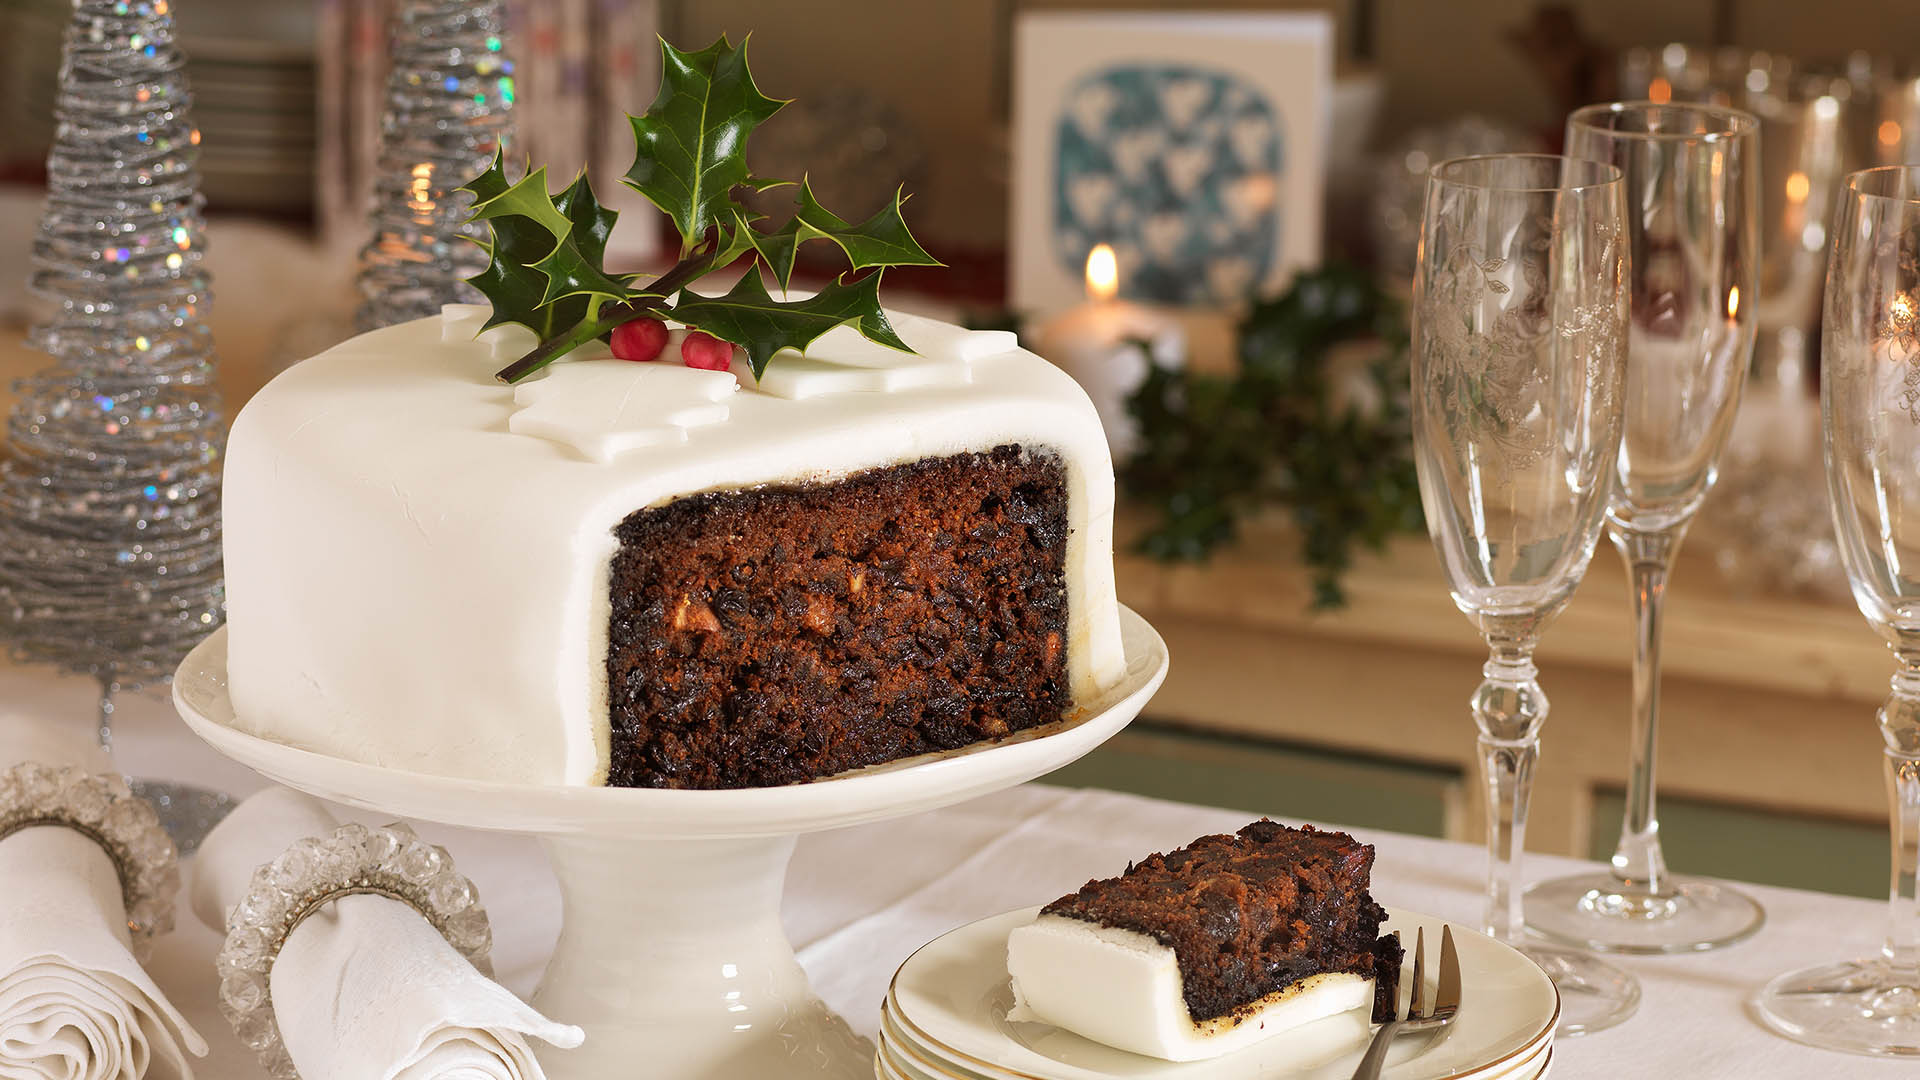 christmas cakes images hd